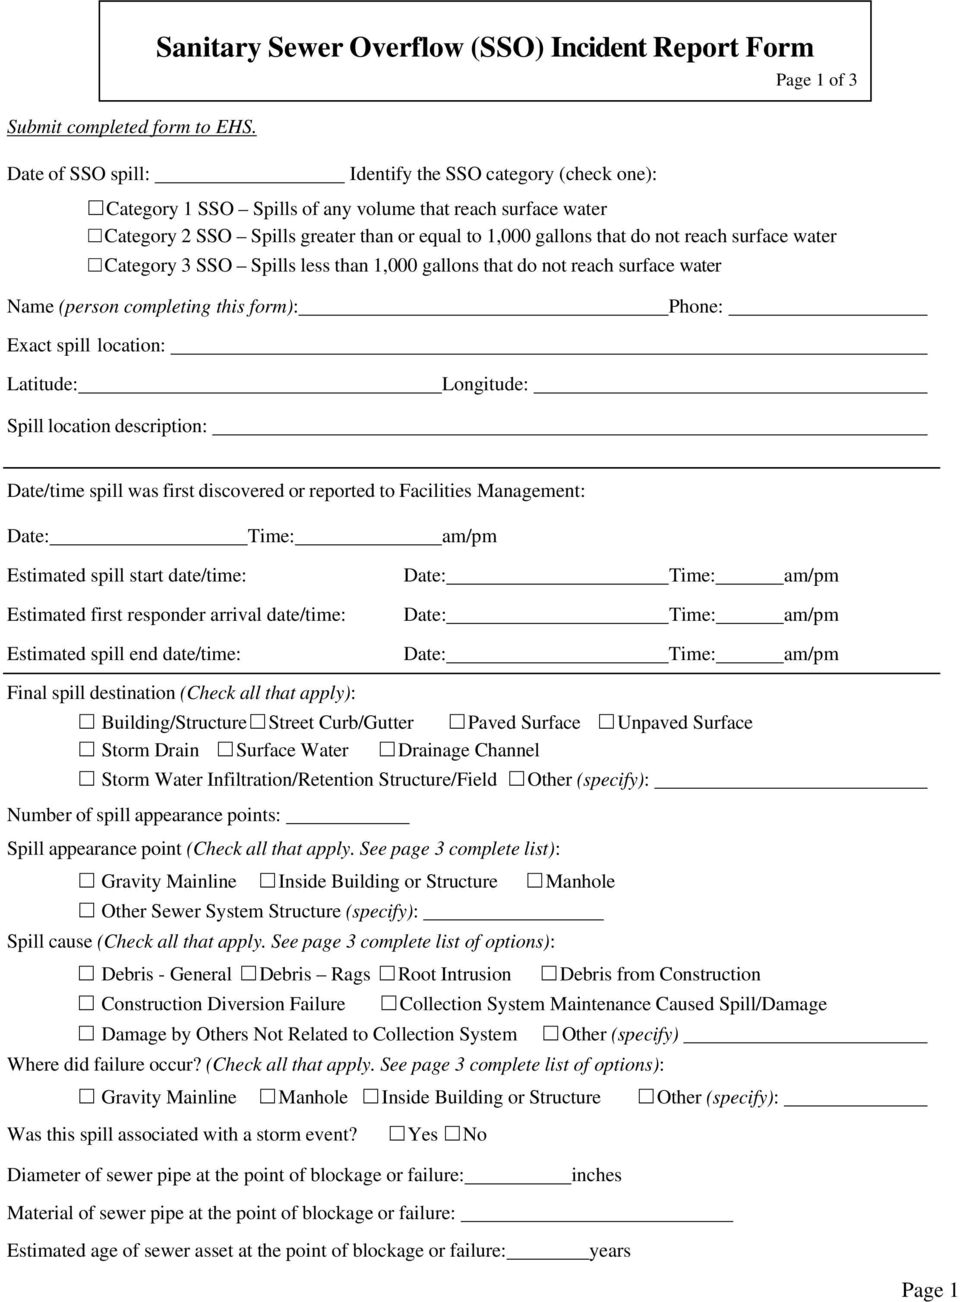 than or equal to 1,000 that do not reach surface water Category 3 SSO Spills less than 1,000 that do not reach surface water Page 1 of 3 Name (person completing this form): Phone: Exact spill